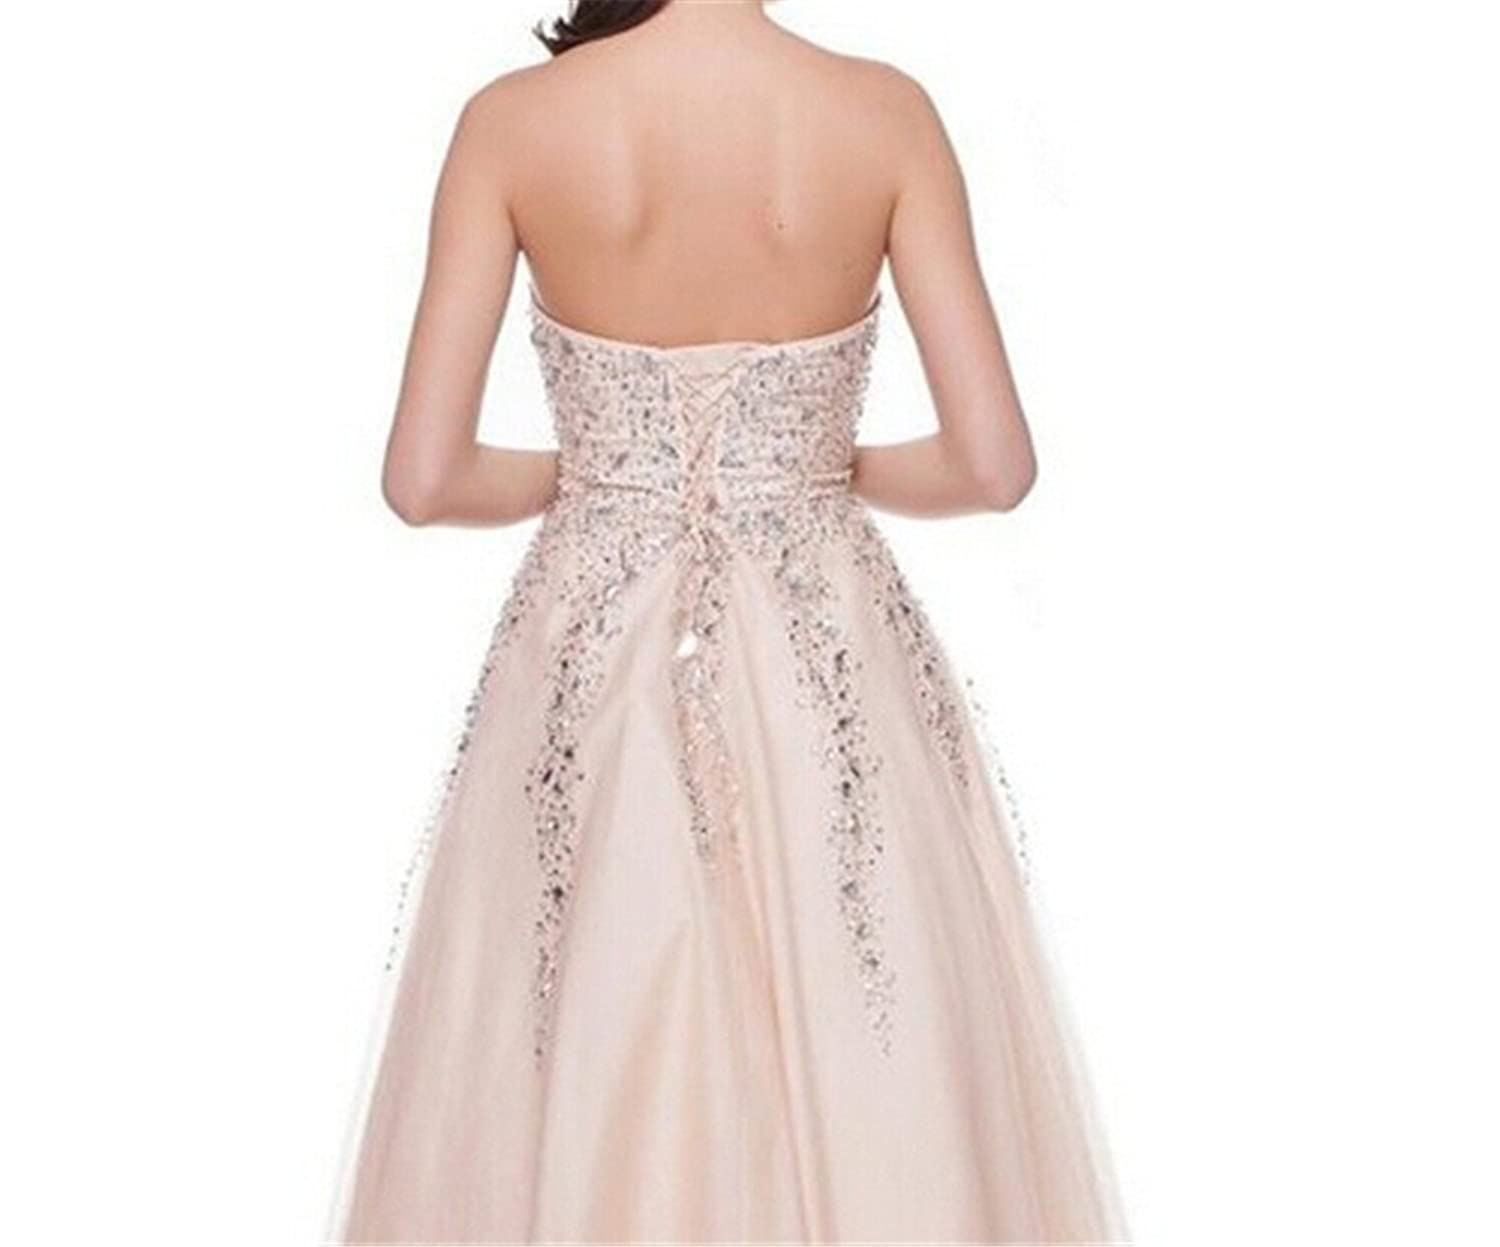 AngelDragon Elegant Strapless Beaded Quinceanera Prom Dress Ball Gowns